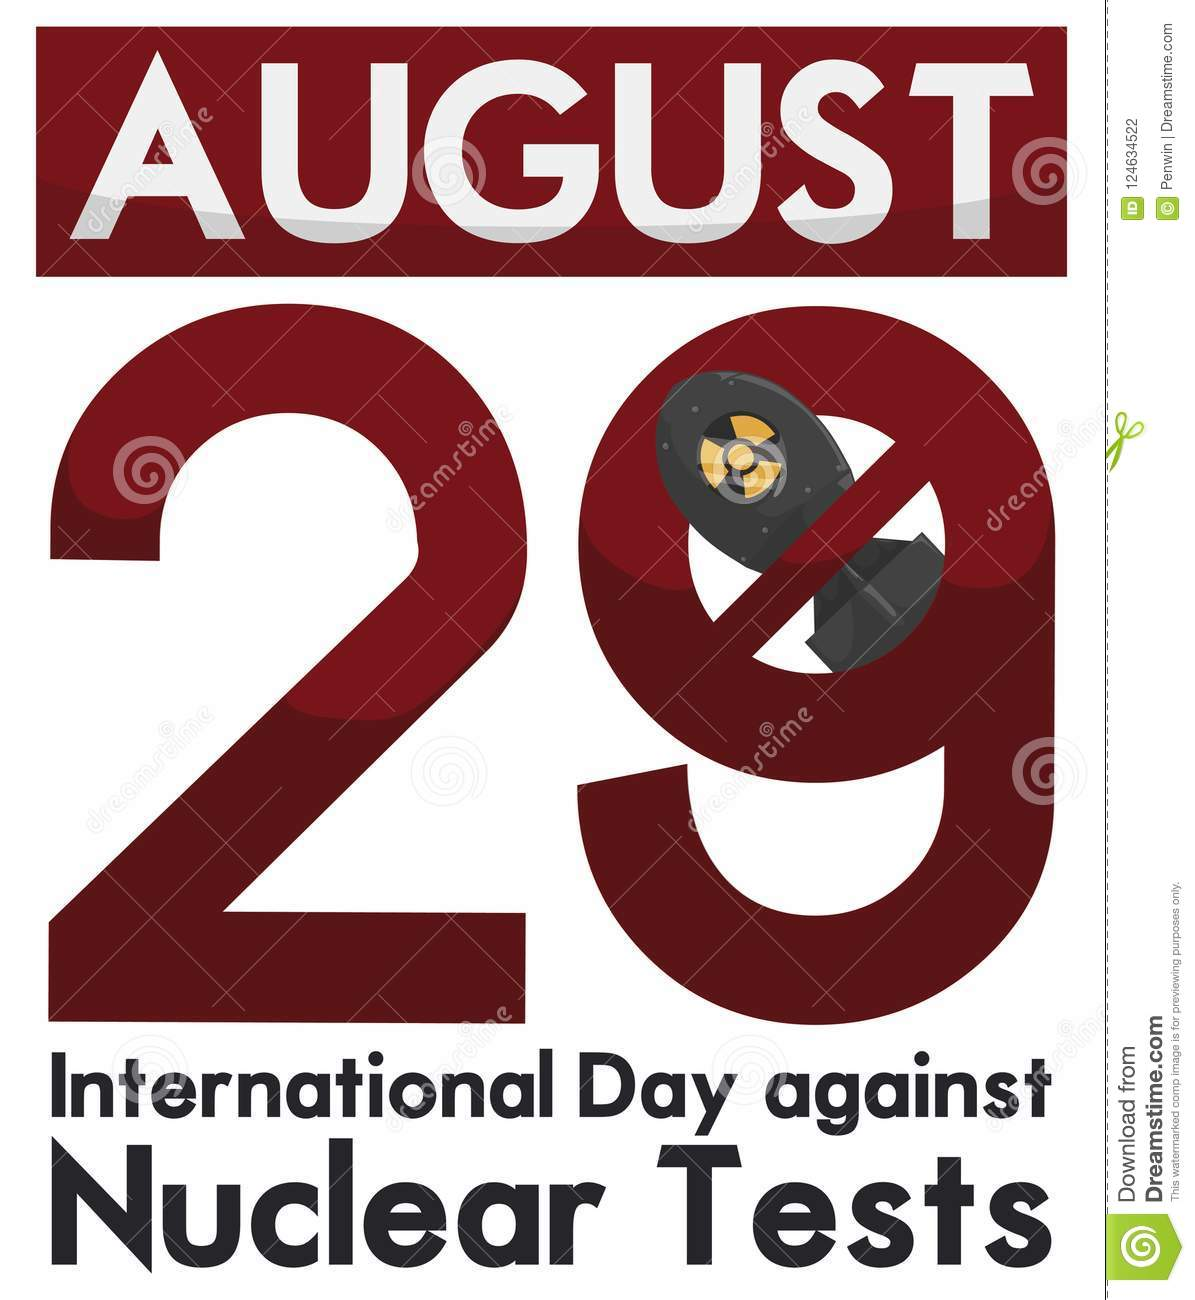 Calendar With Awareness Date For International Day Against Nuclear